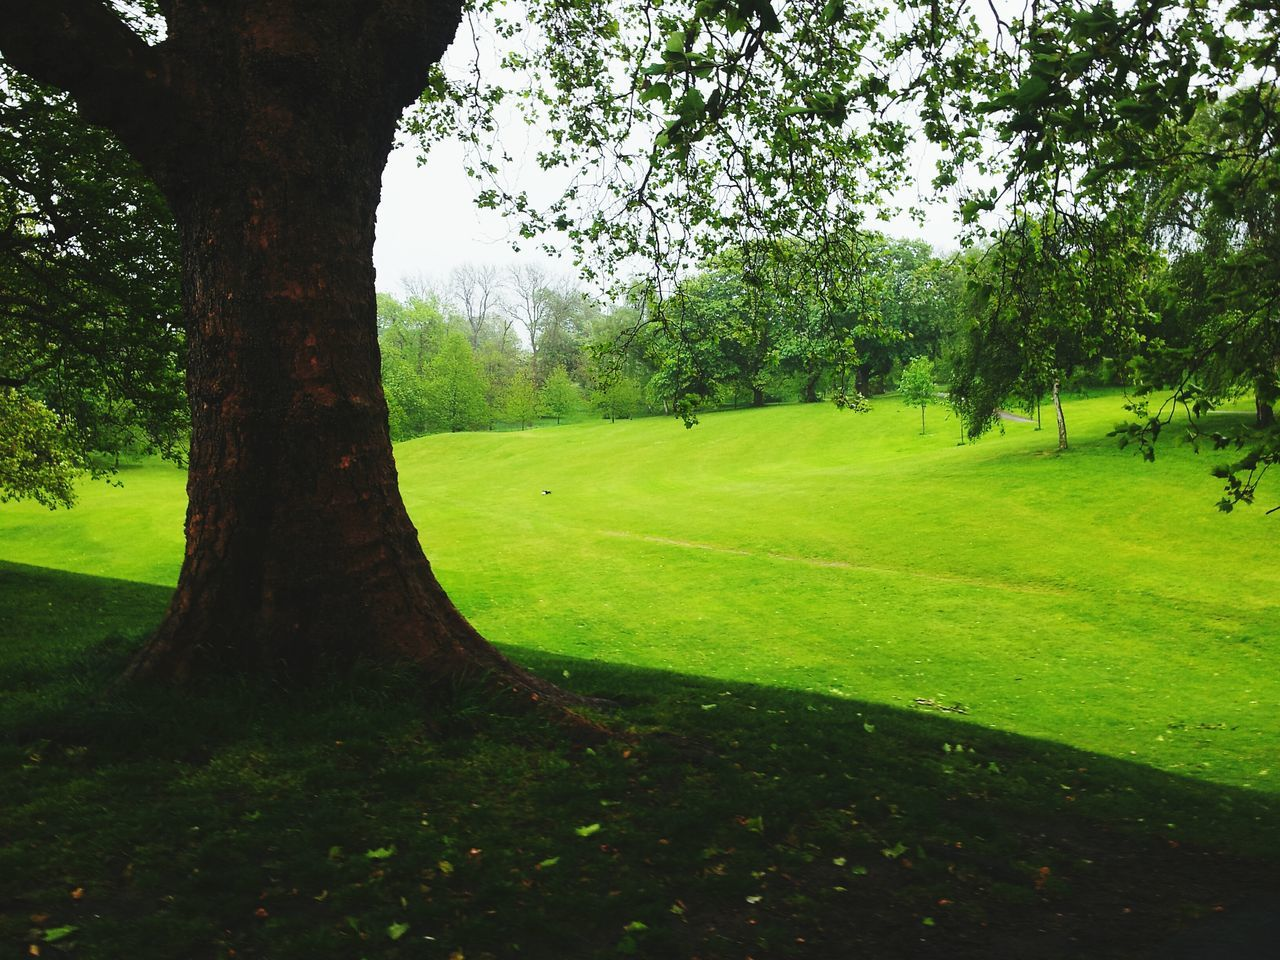 Tree Nature Grass Green Color Beauty In Nature Tree Trunk Growth Tranquility No People Landscape Outdoors Scenics Day Golf Golf Course Lush - Description Sky Green - Golf Course Greenwich,London LONDON❤ Grass Greenwich Park Beauty In Nature Nature London